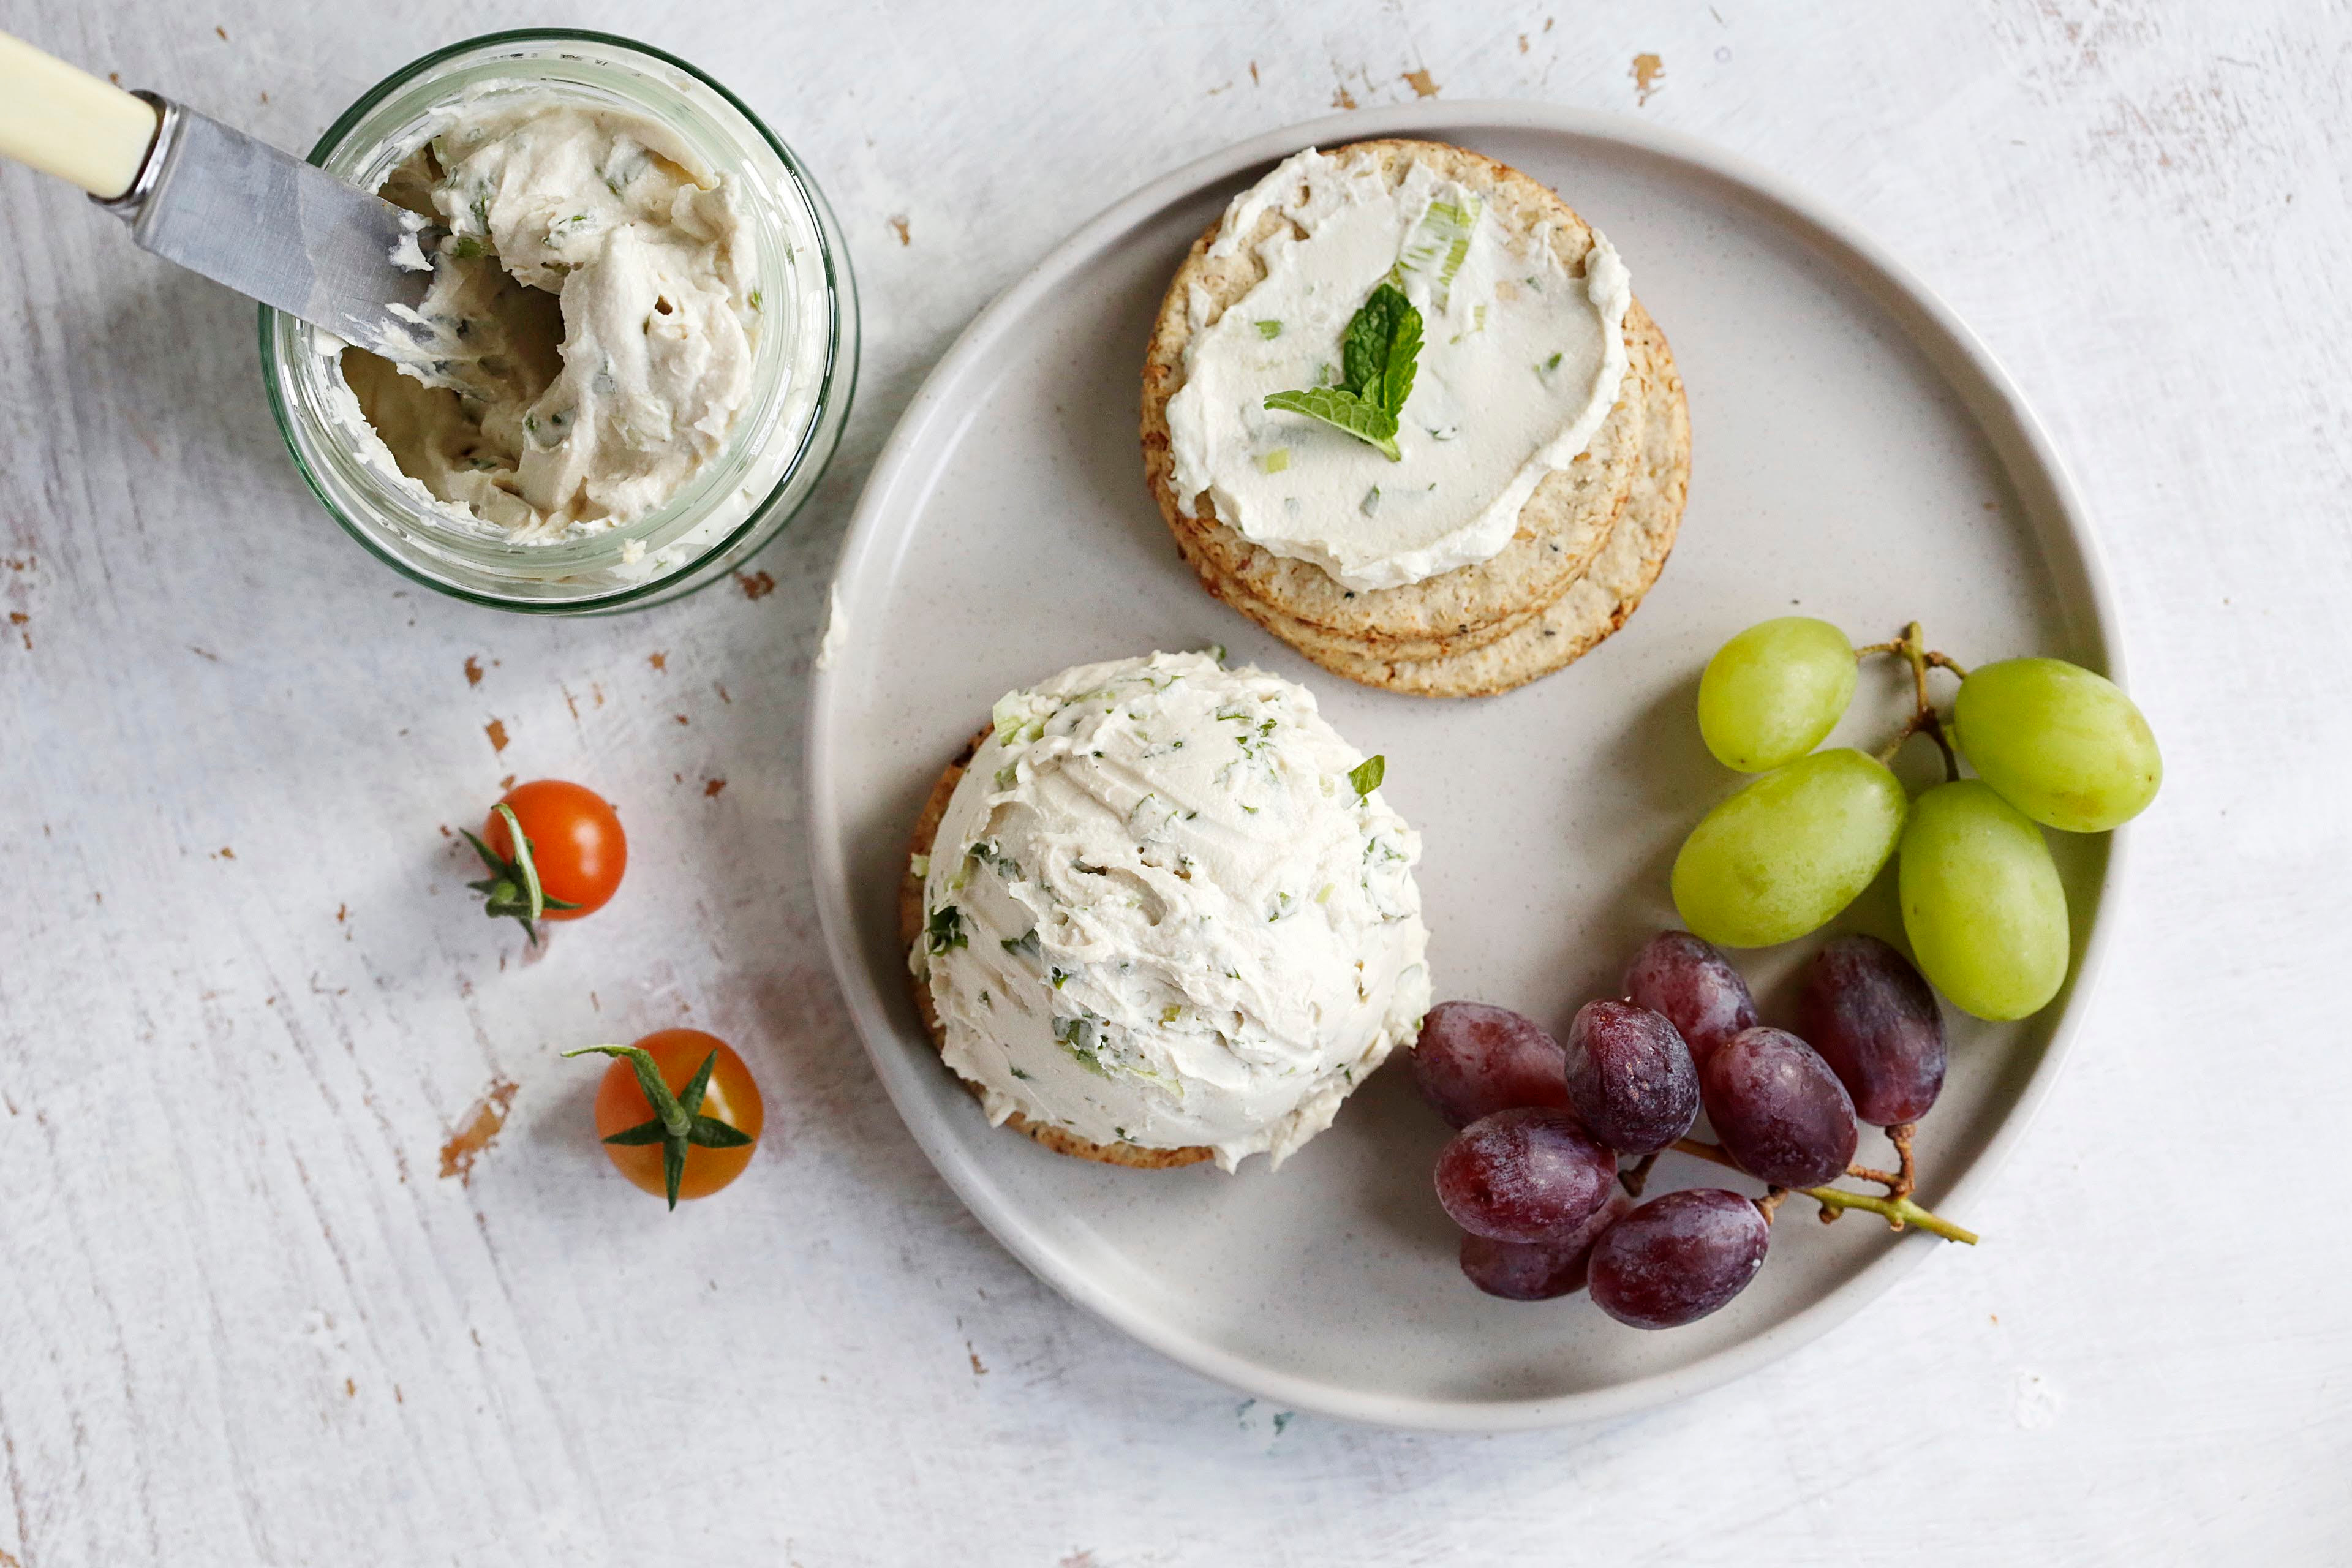 Introduction to Nut Cheese